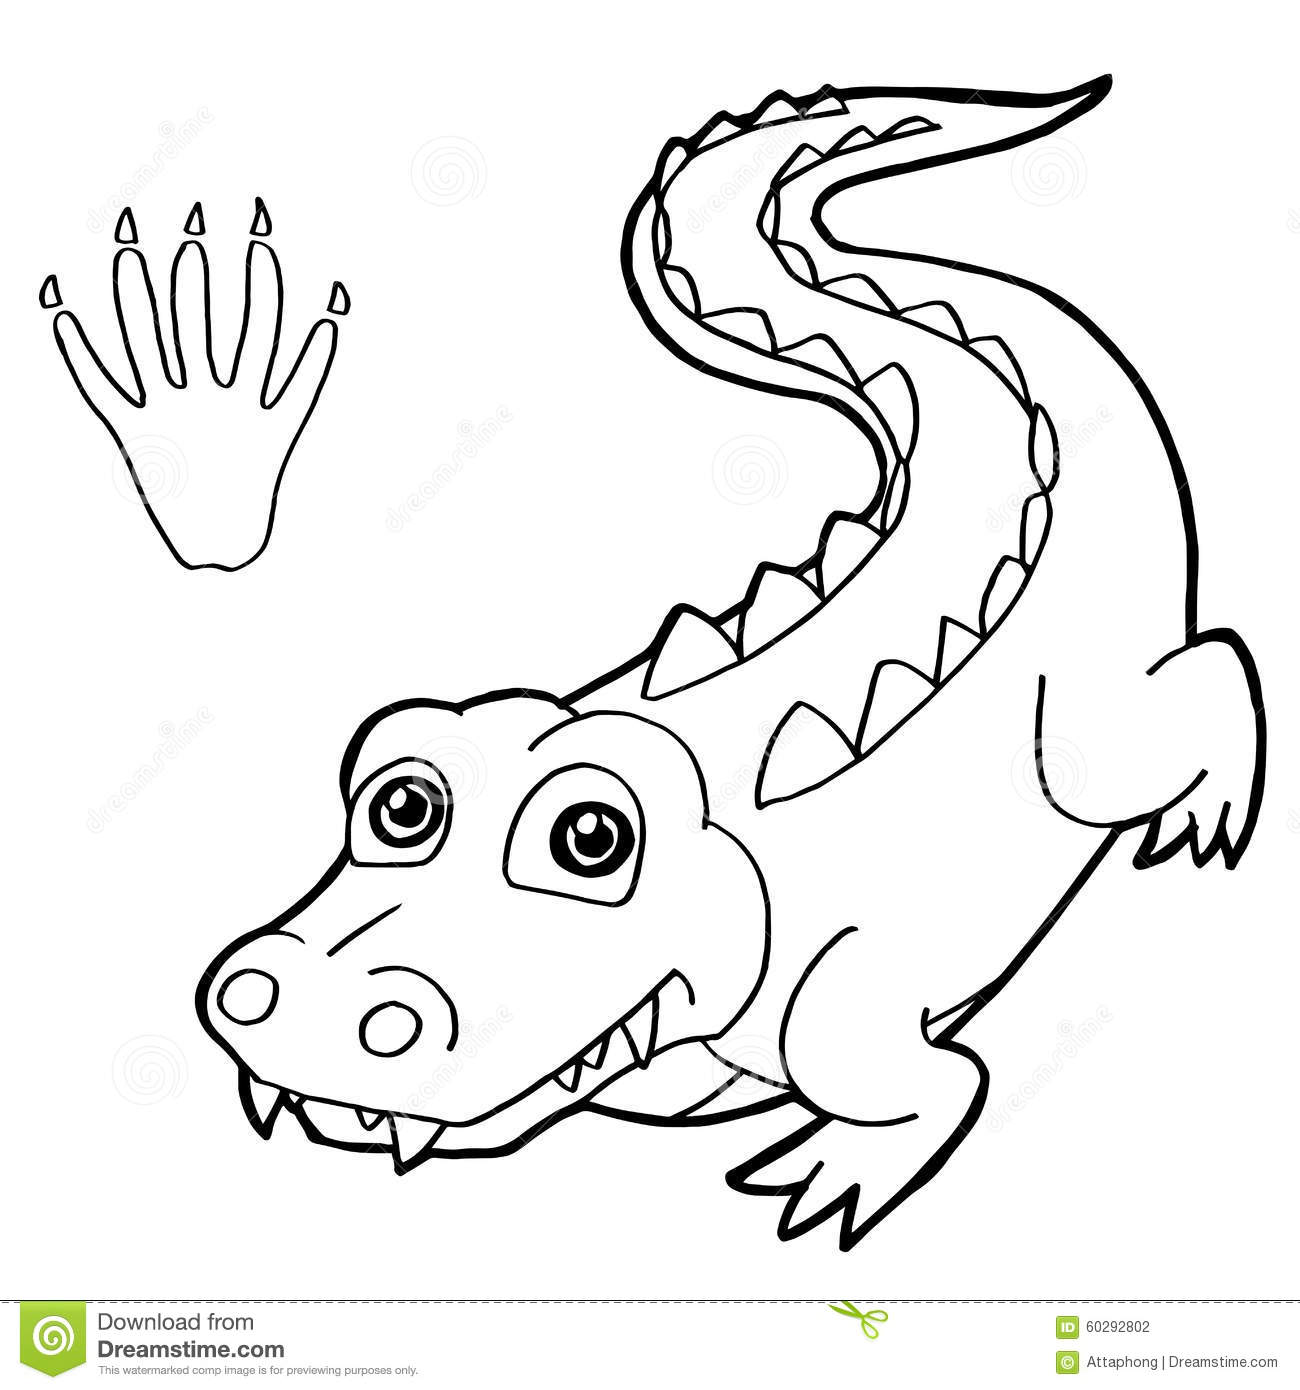 Vector The Crocodile Coloring Pages | www.pixshark.com